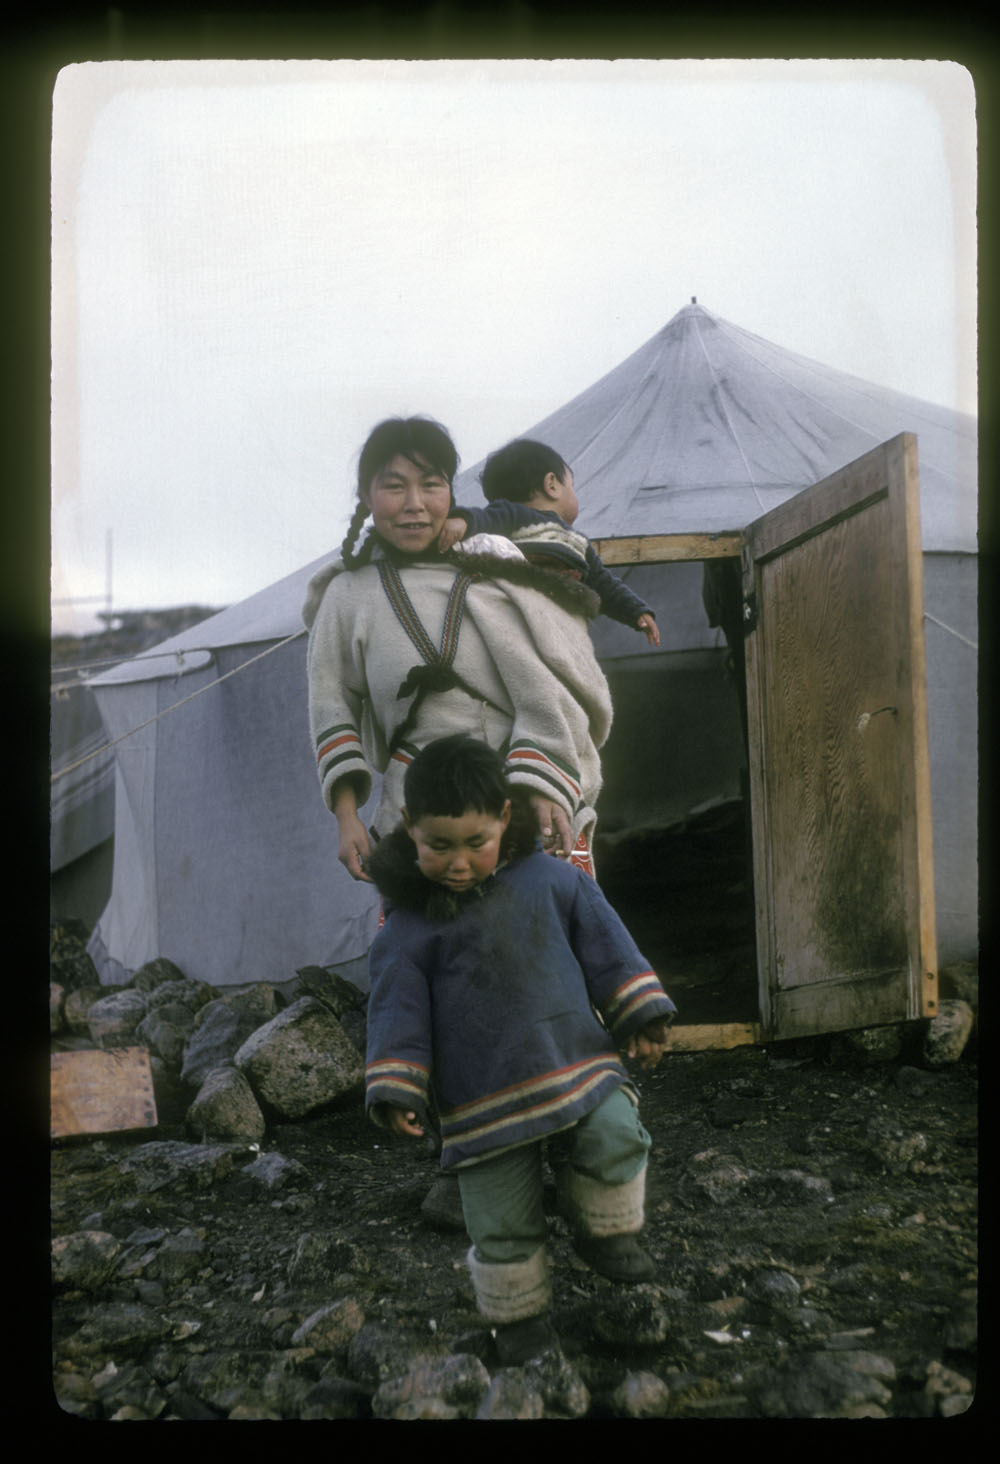 an Inuit woman standing with her son in front of a canvas tent carrying a baby in the hood of her parka, Kinngait, Nunavut, late summer 1960